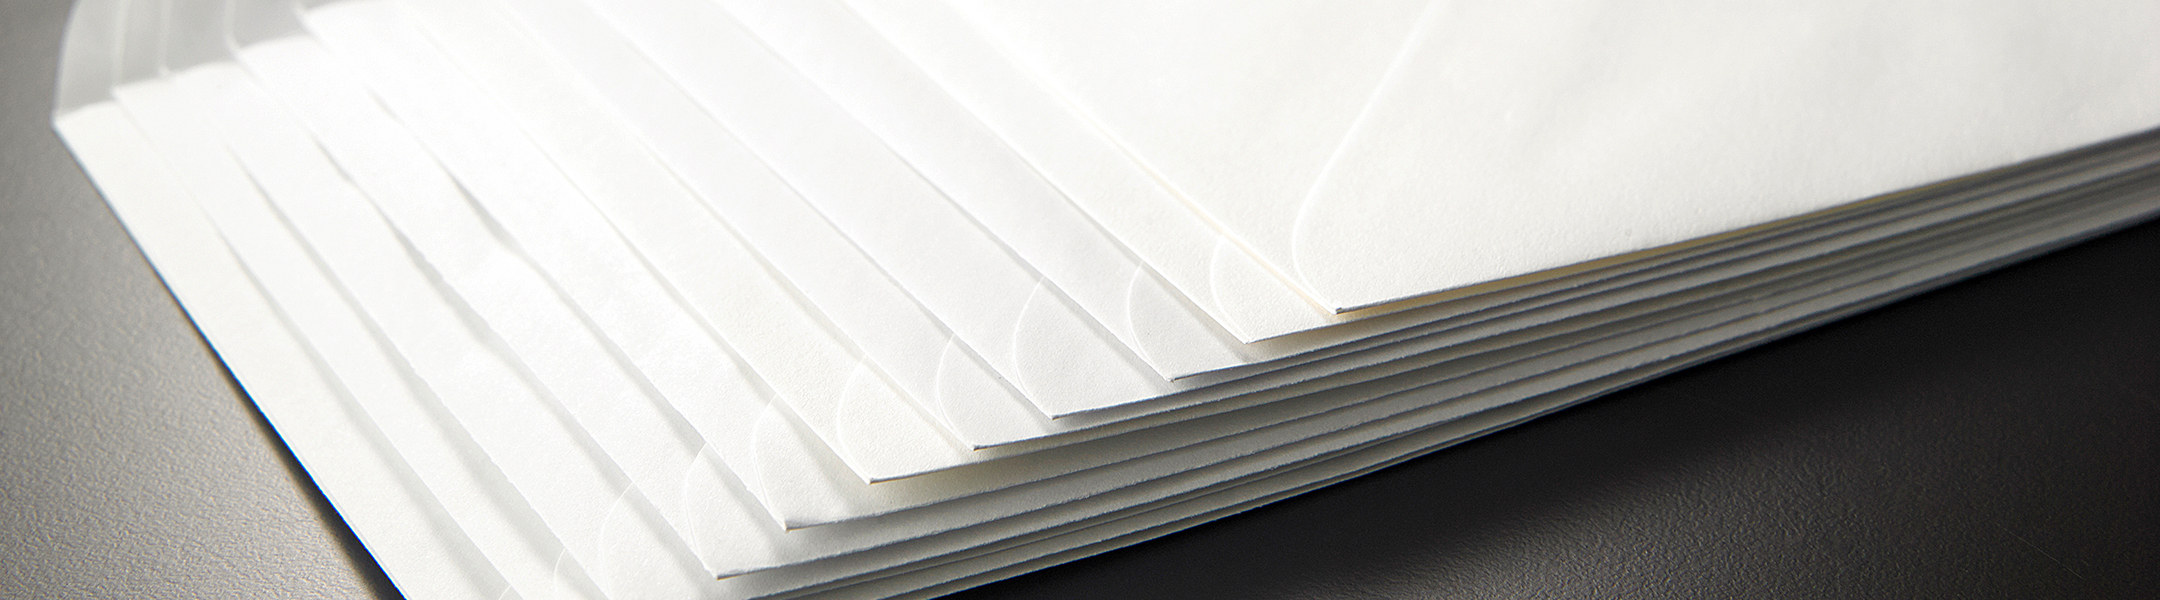 Envelopes made  with EarthChoice Envelope Paper by Domtar